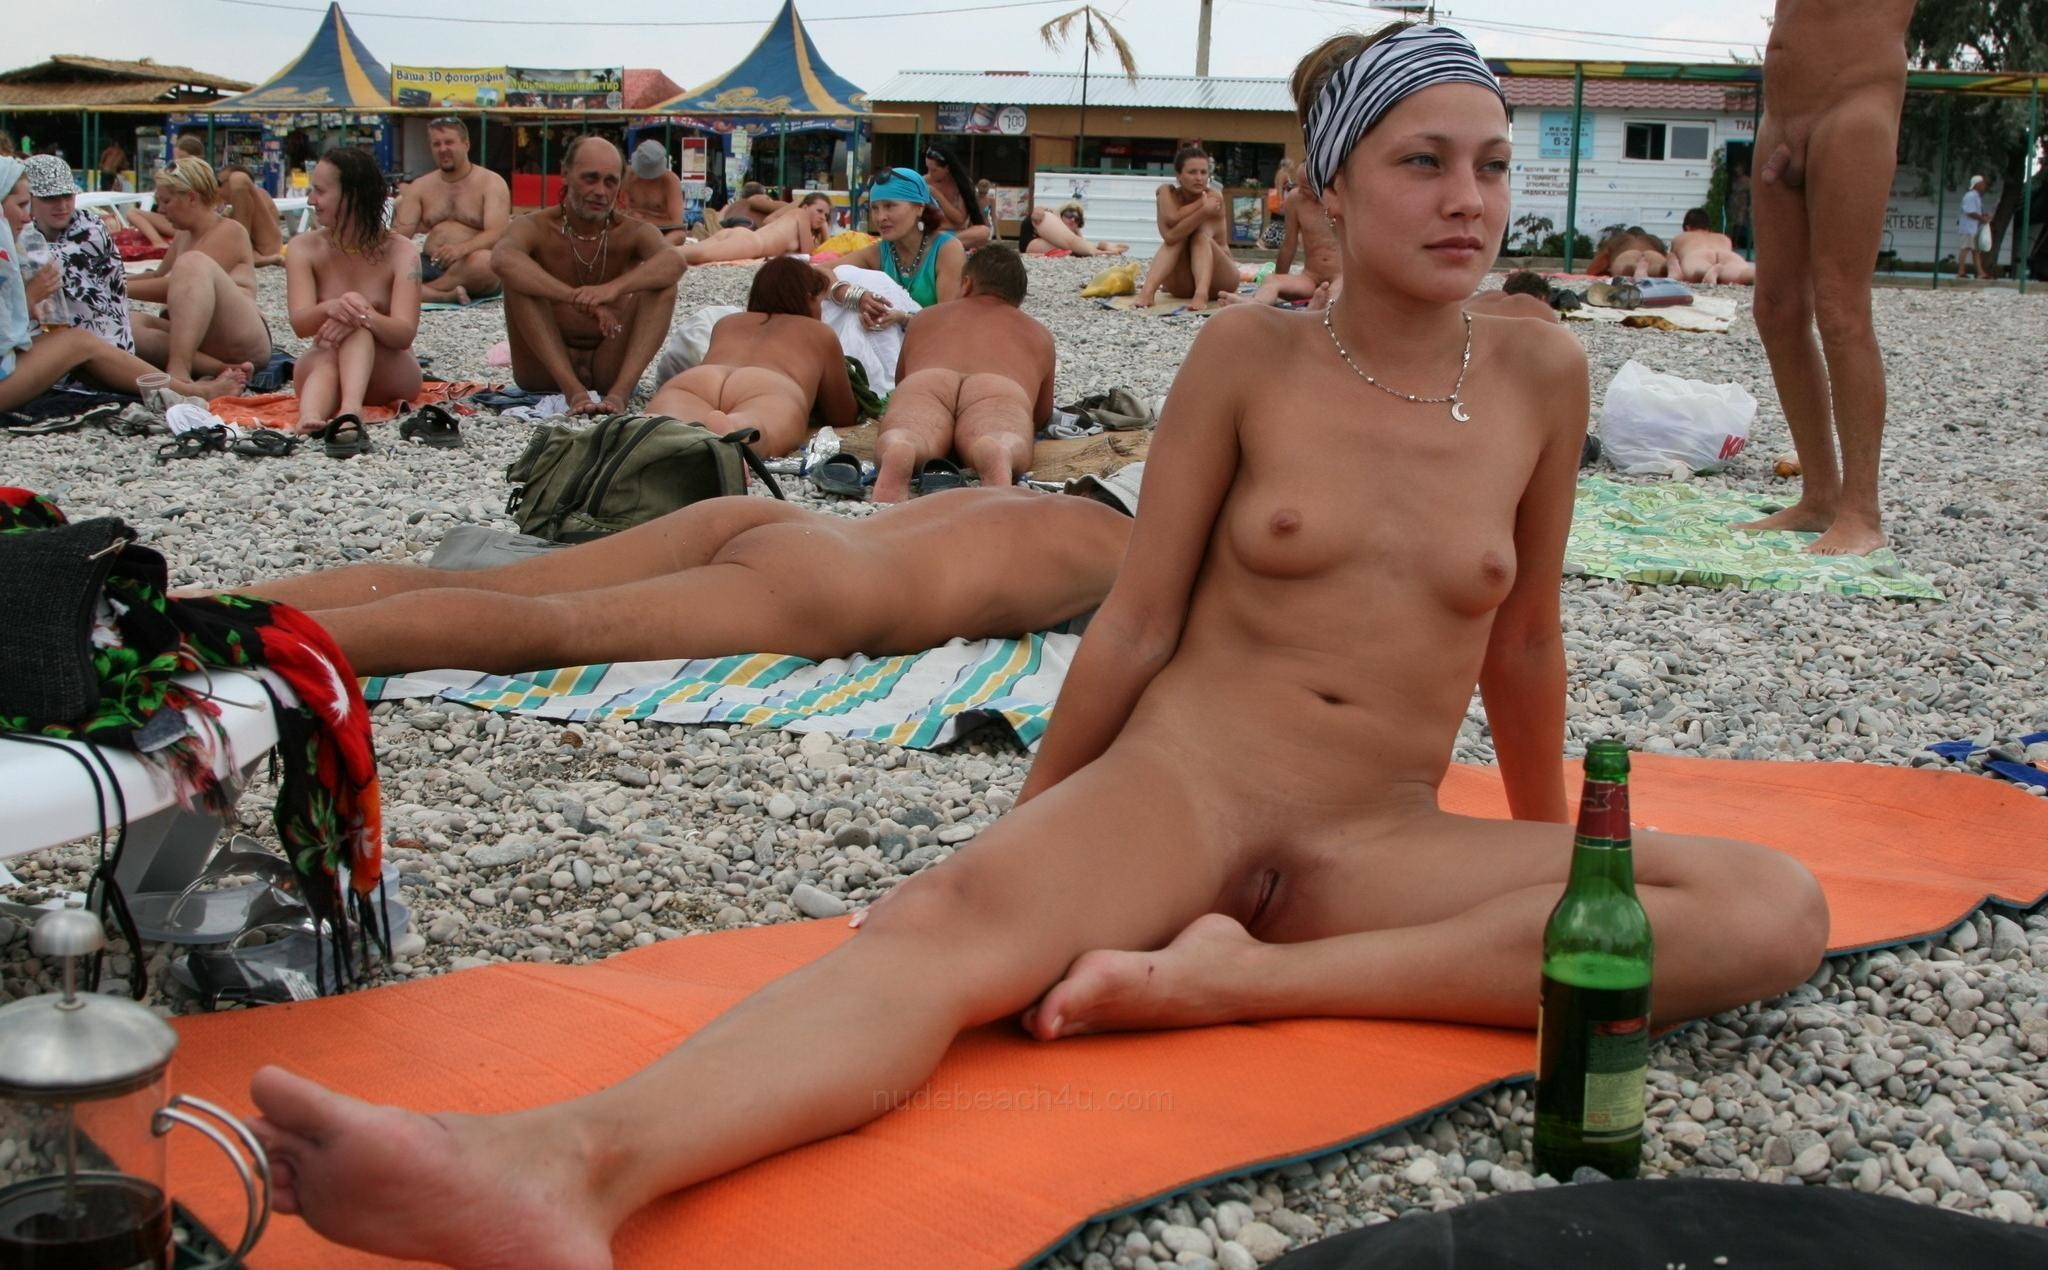 nudists-girls-boobs-beach-topless-mix-vol7-25